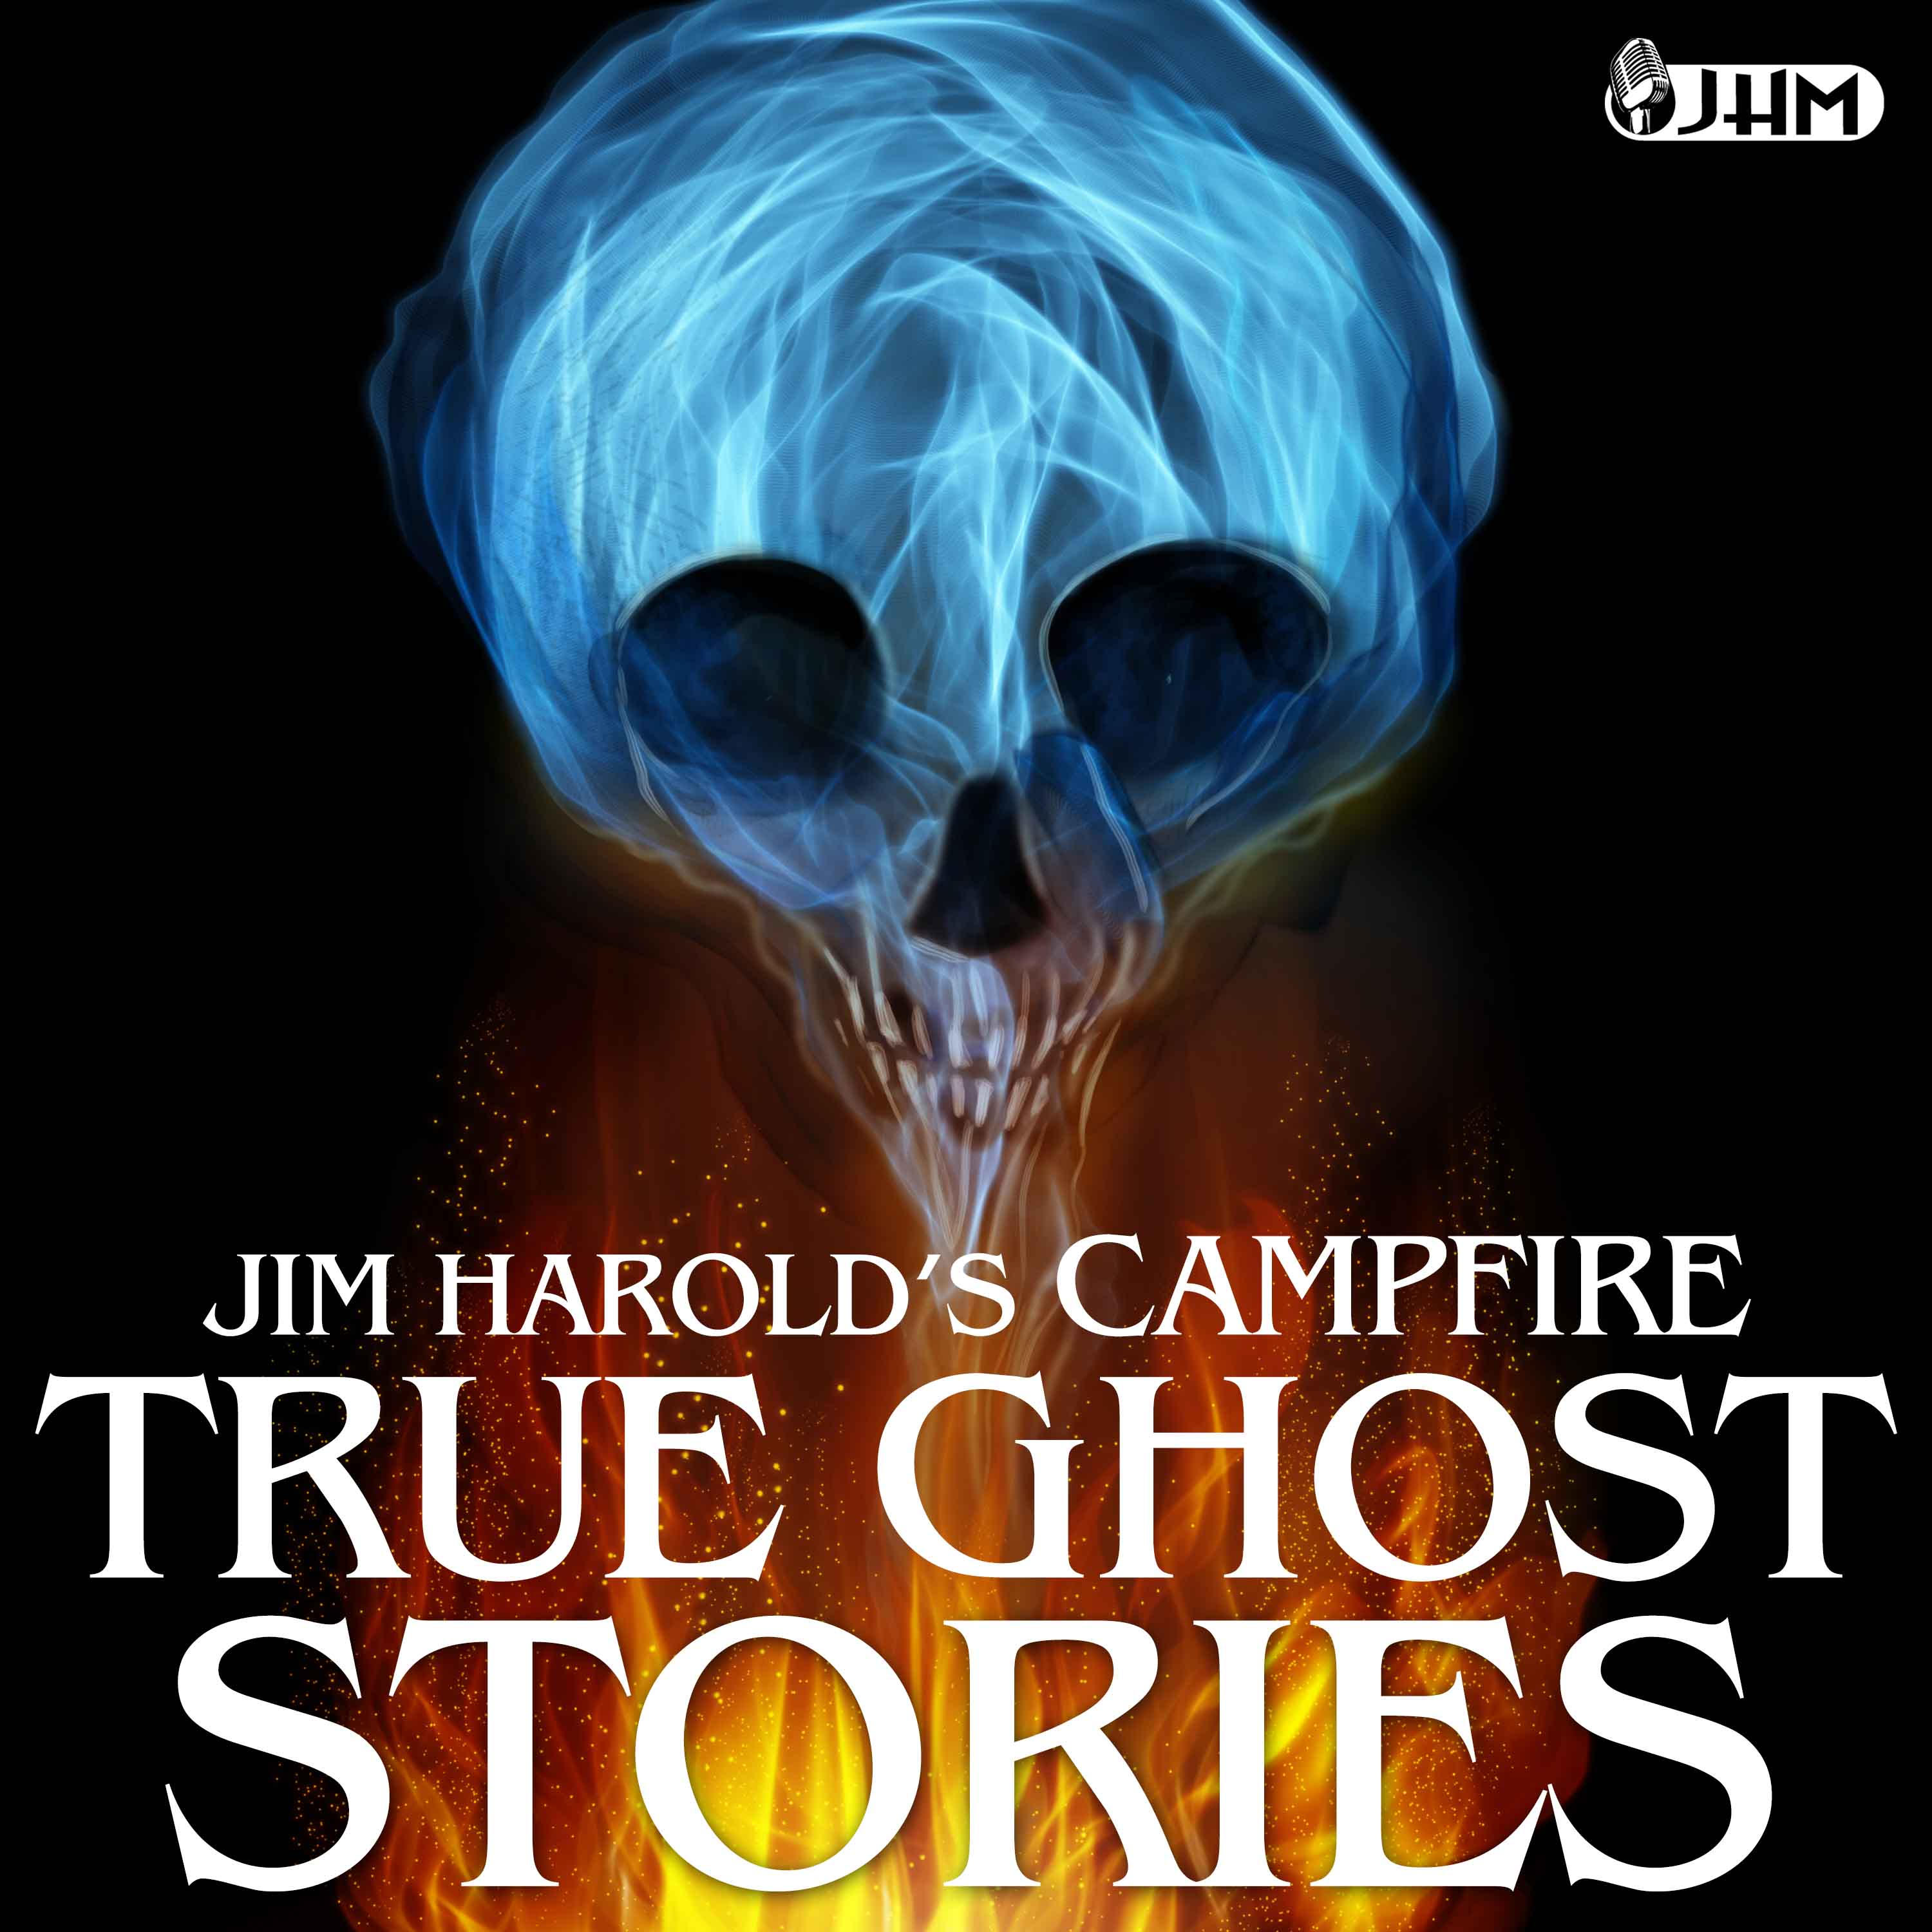 Jim Harold's Campfire True Ghost Stories scary podcasts logo